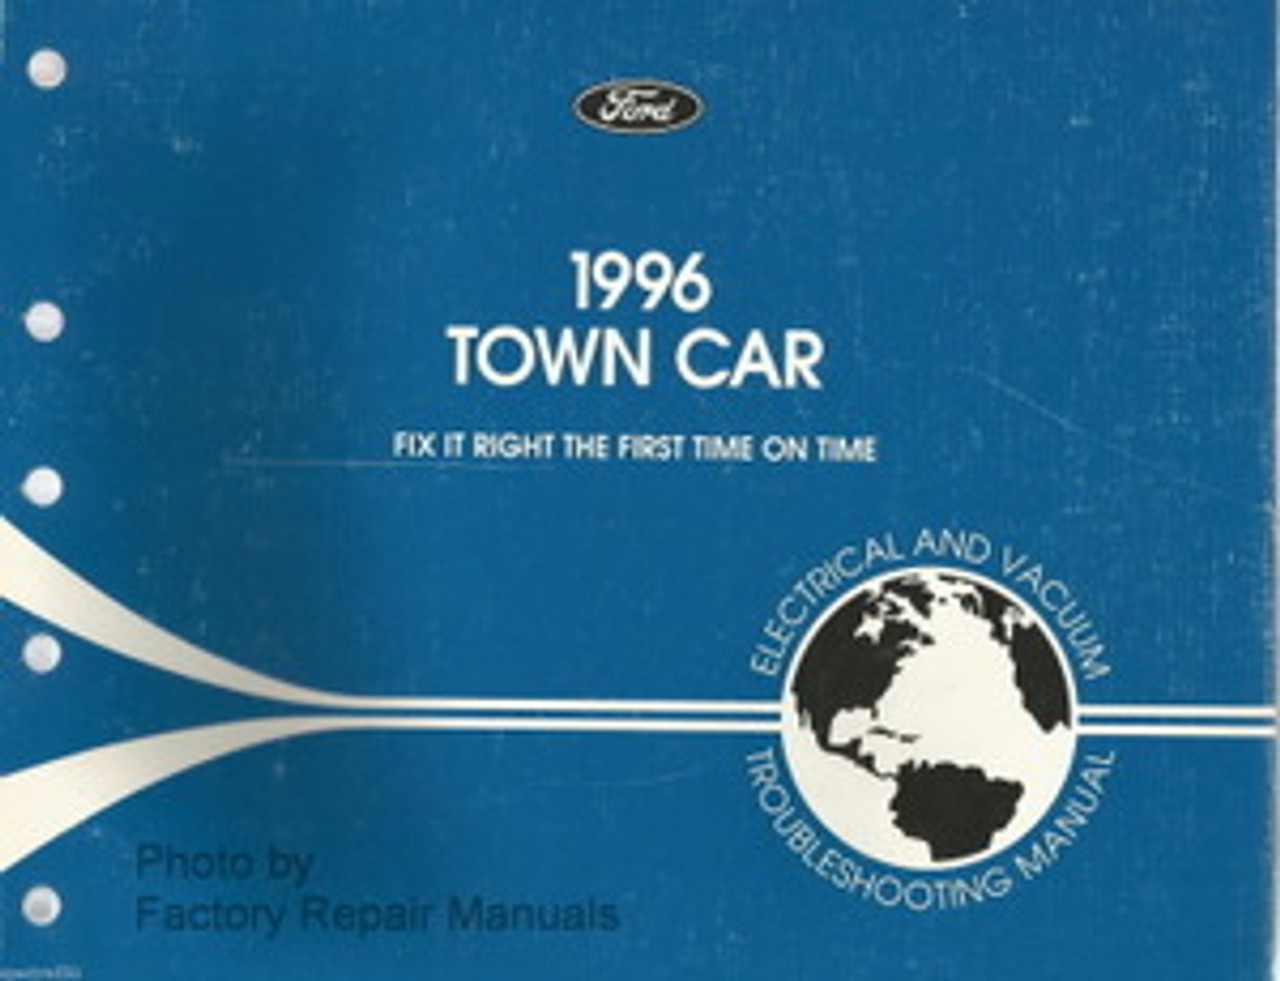 1996 Lincoln Town Car Electrical And Vacuum Troubleshooting Manual Factory Repair Manuals